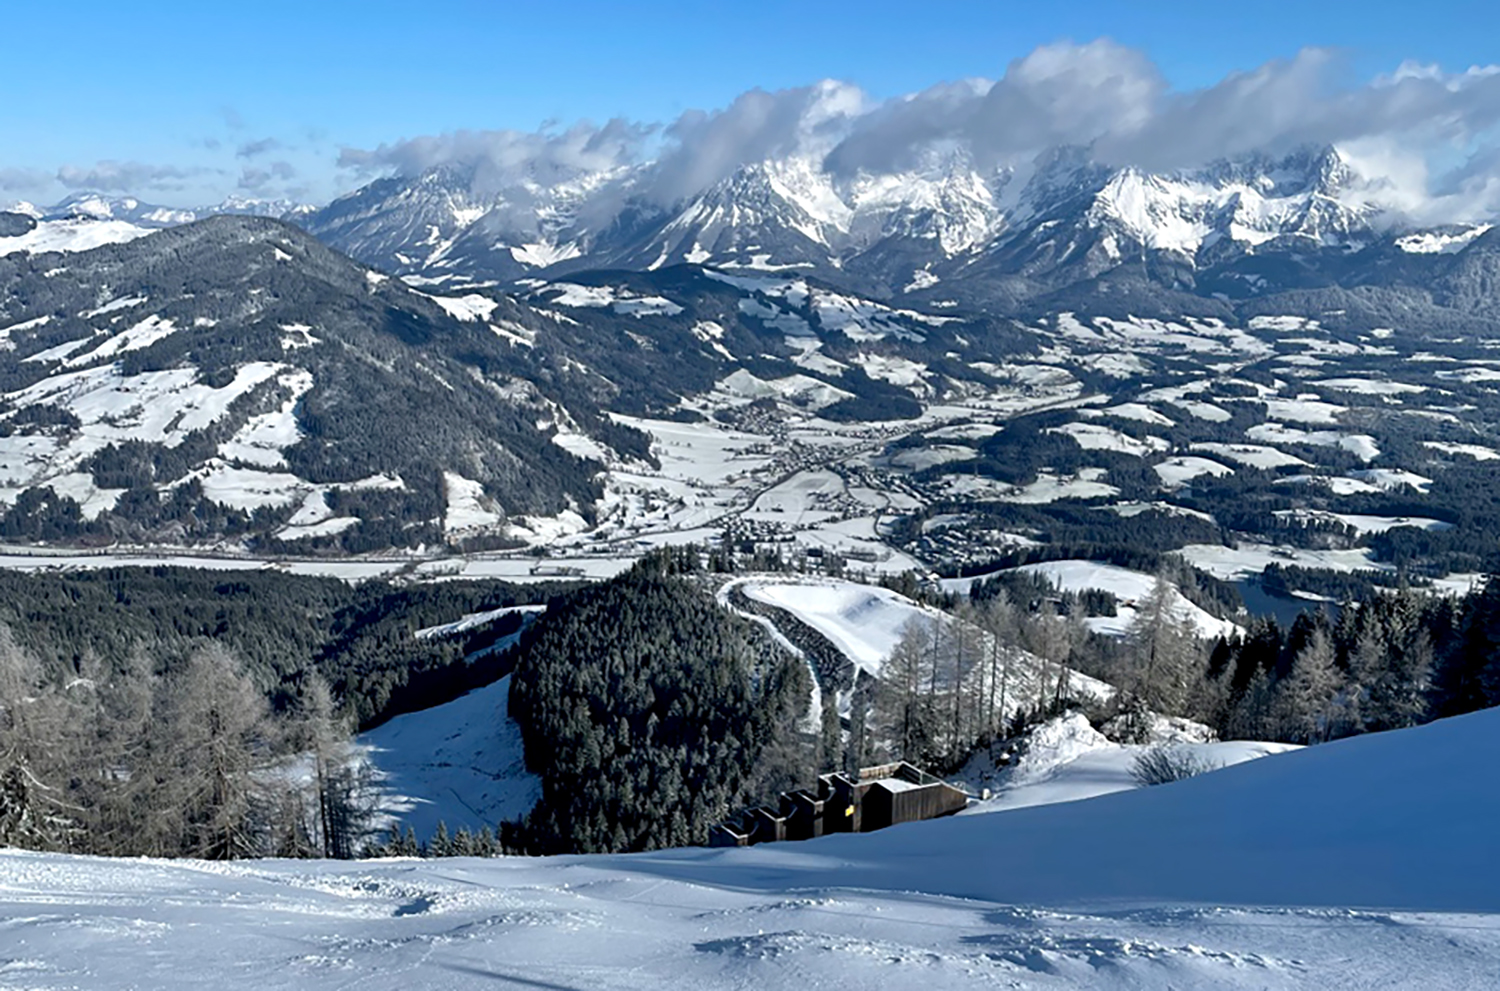 Blacksheep Sports' Sebastian Steinbach goes on the Blister Podcast to discuss the 20/21 ski / snowboard season in Europe, how it went, and his predictions for the 21/22 season.